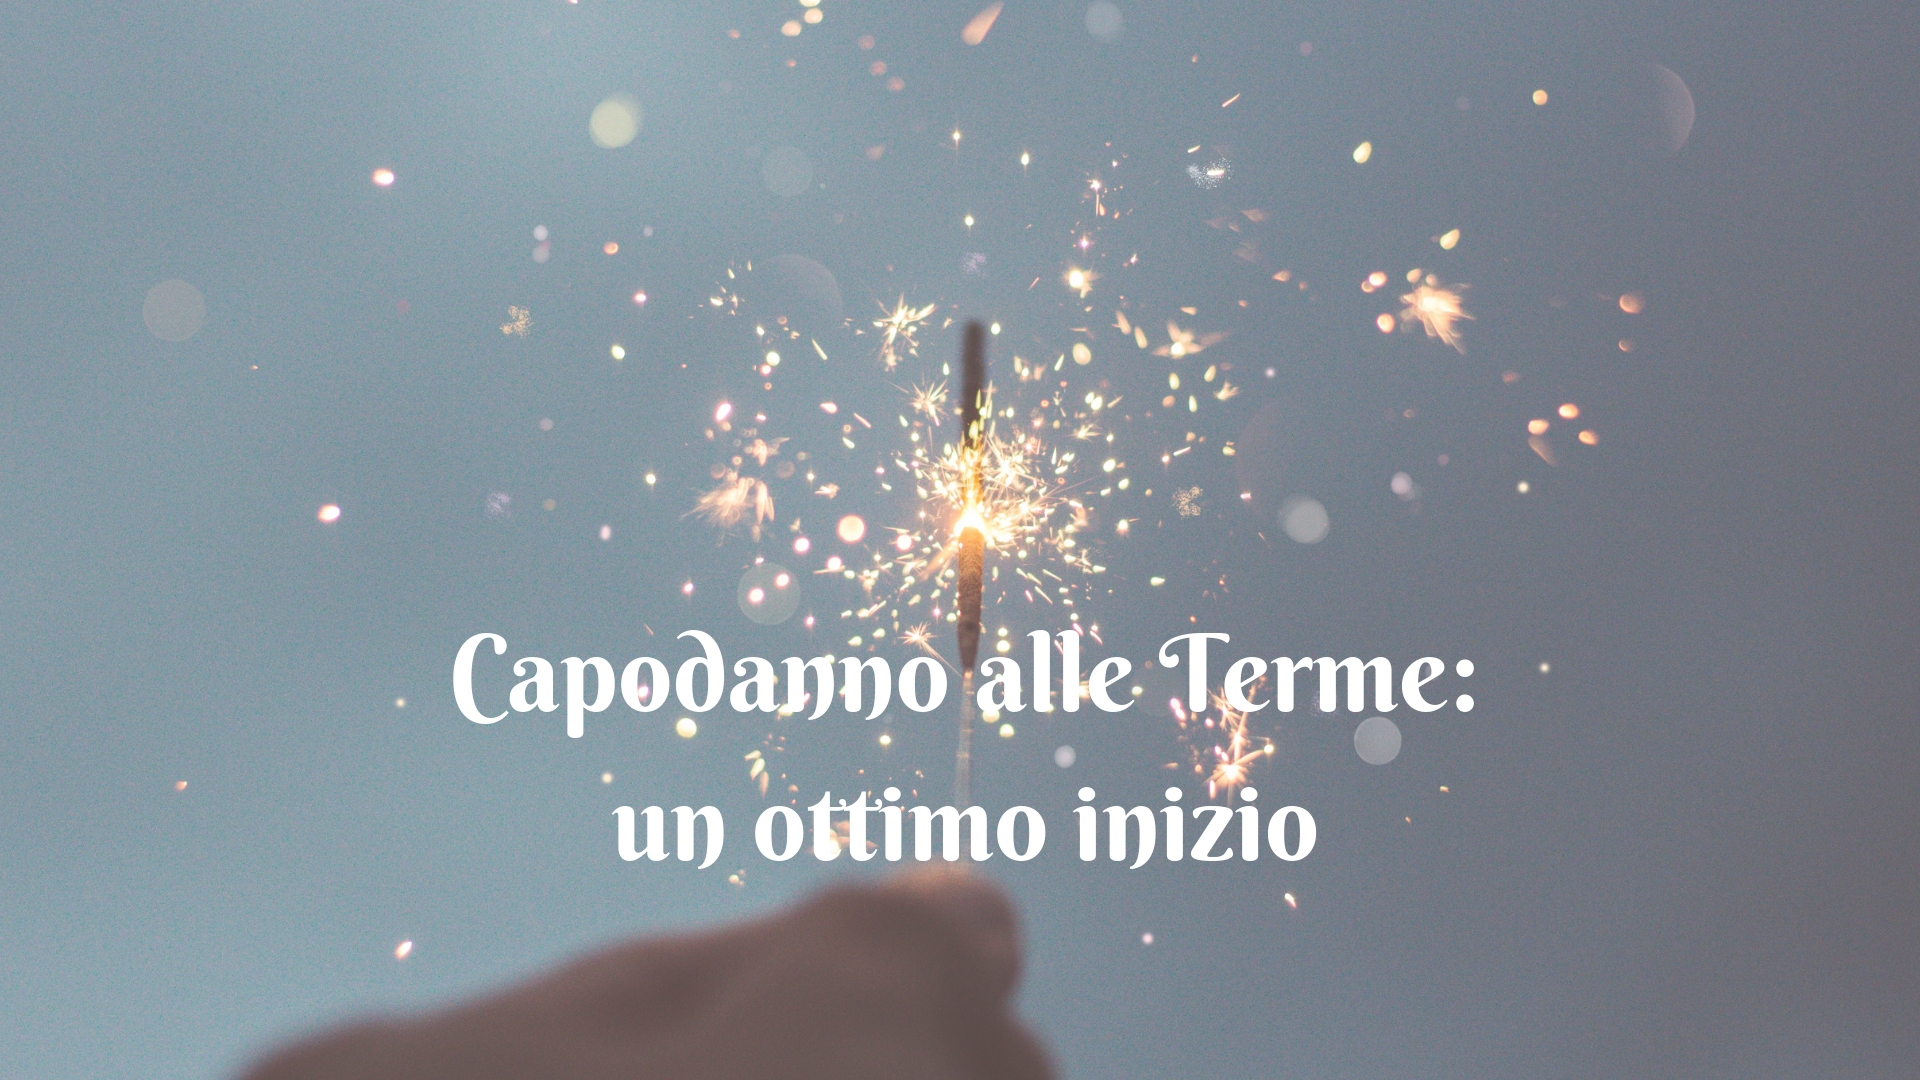 Capodanno alle Terme (Ph. Cristian Escobar on Unsplash)